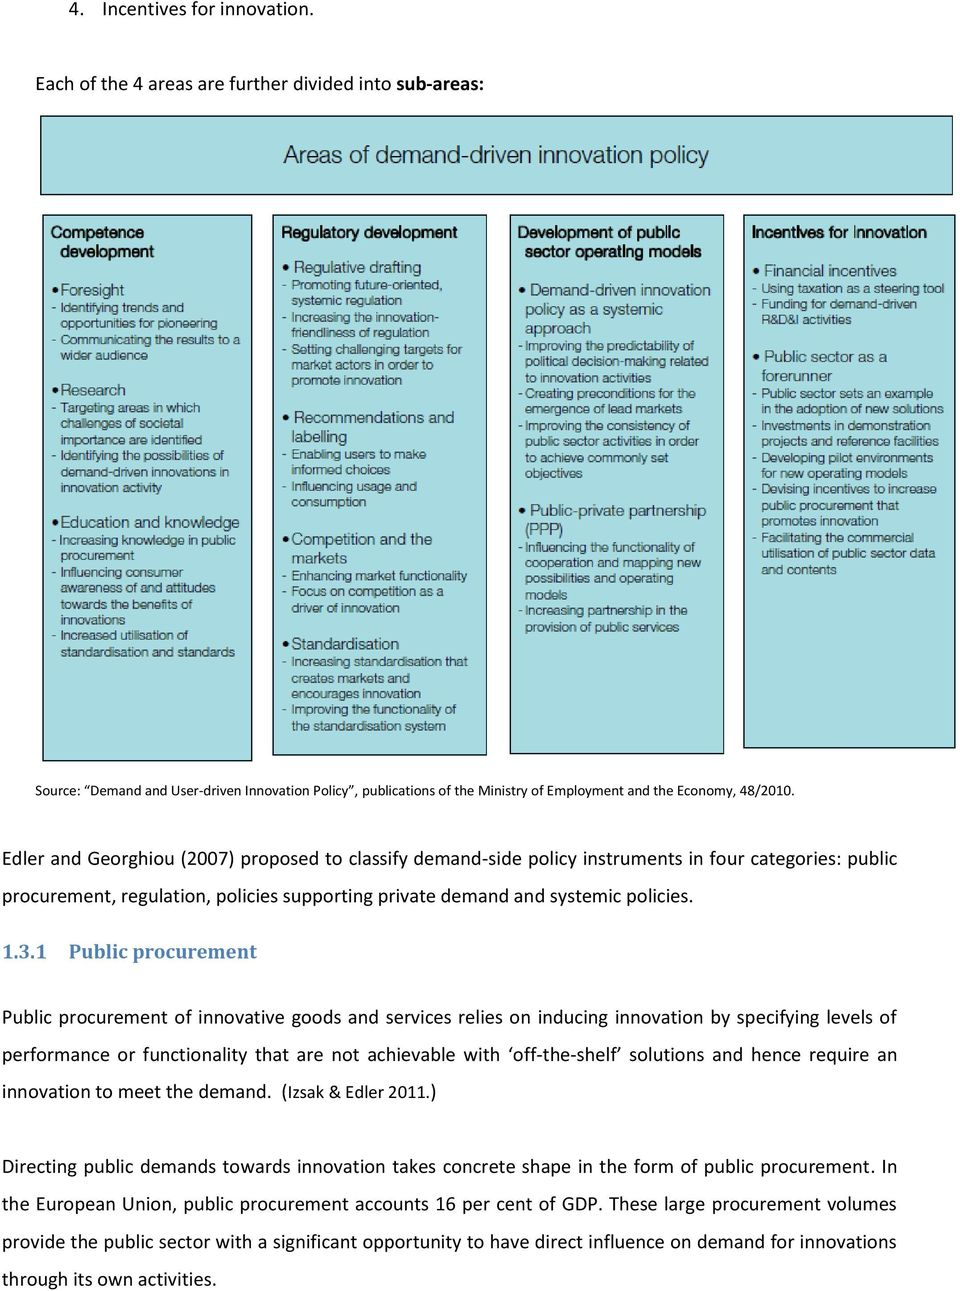 Edler and Georghiou (2007) proposed to classify demand-side policy instruments in four categories: public procurement, regulation, policies supporting private demand and systemic policies. 1.3.